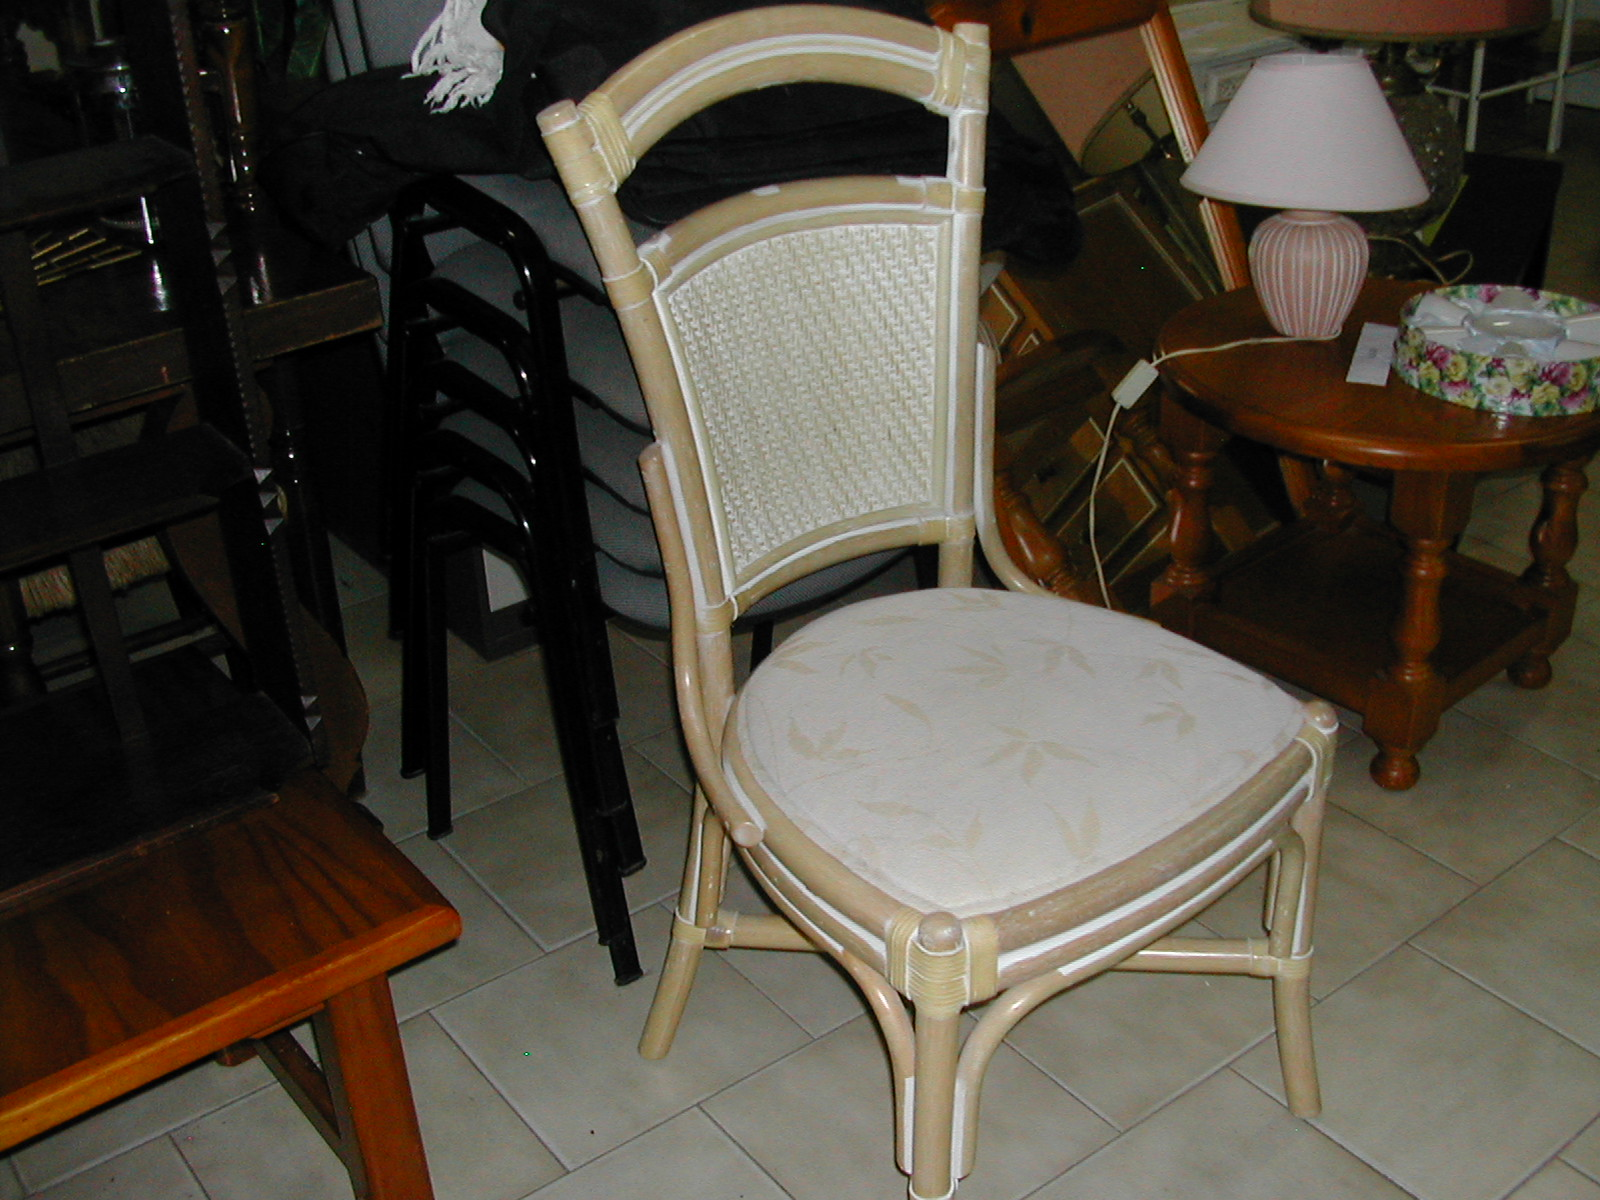 Odd Chairs Selection Of Odd Chairs  Nerja Household Centre  Second Hand